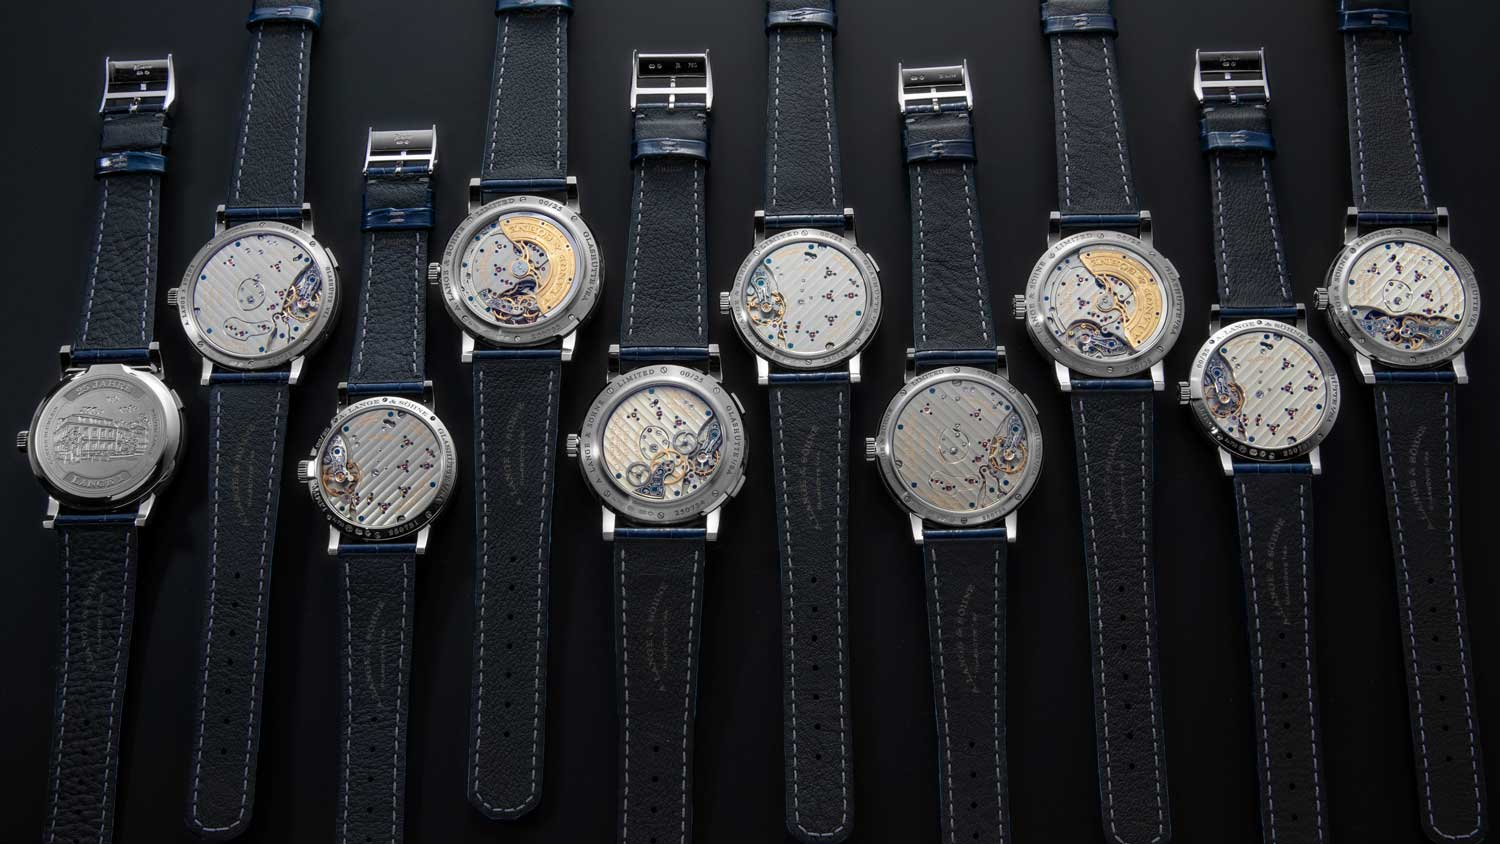 The complete Lange 1 25th Anniversary Collection from the back (Image © Revolution)